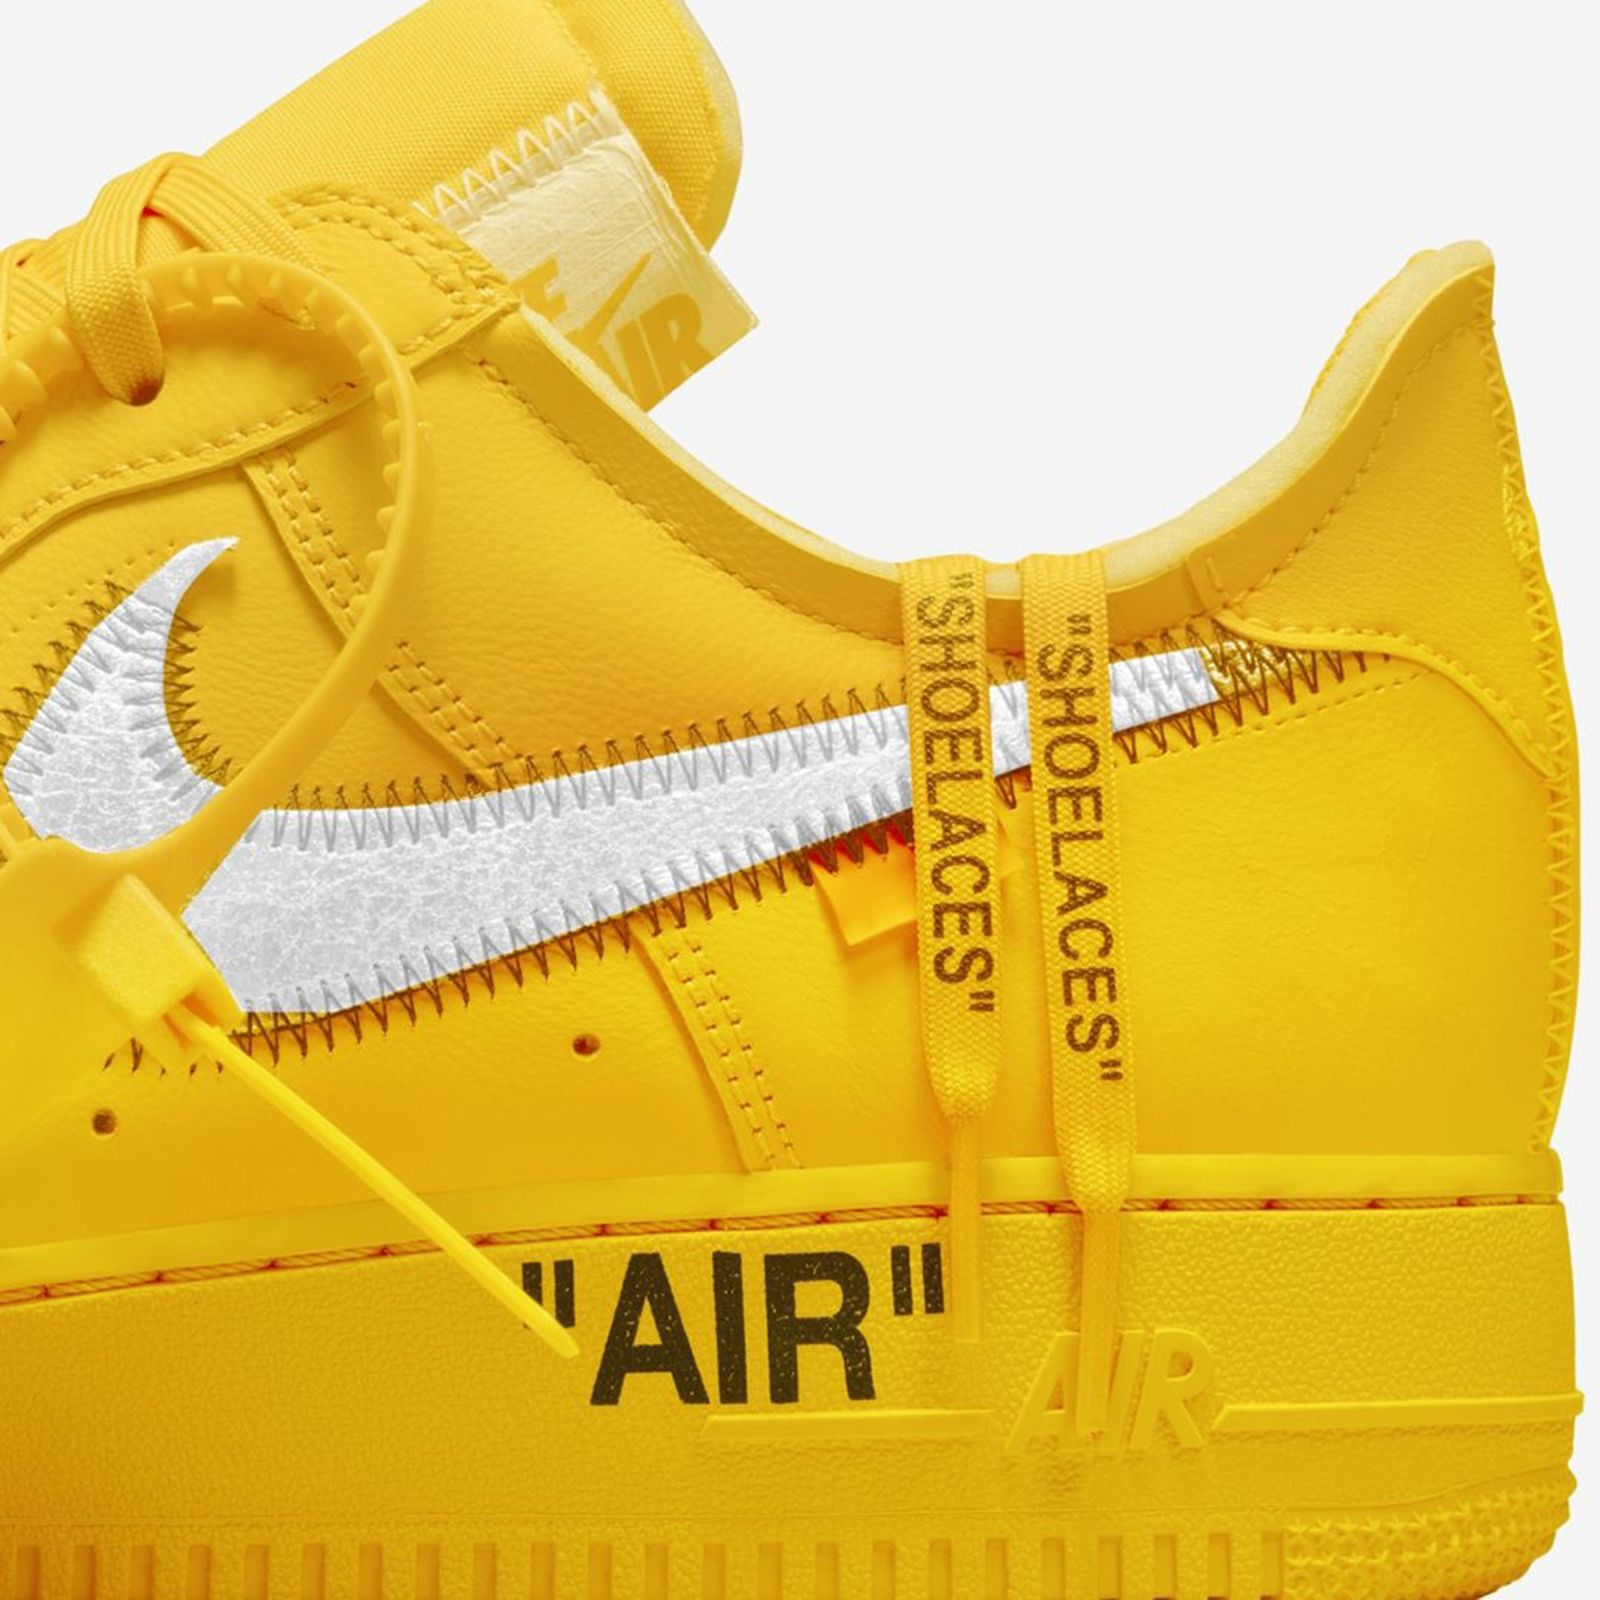 off-white-nike-air-force-1-canary-yellow-release-date-price-07